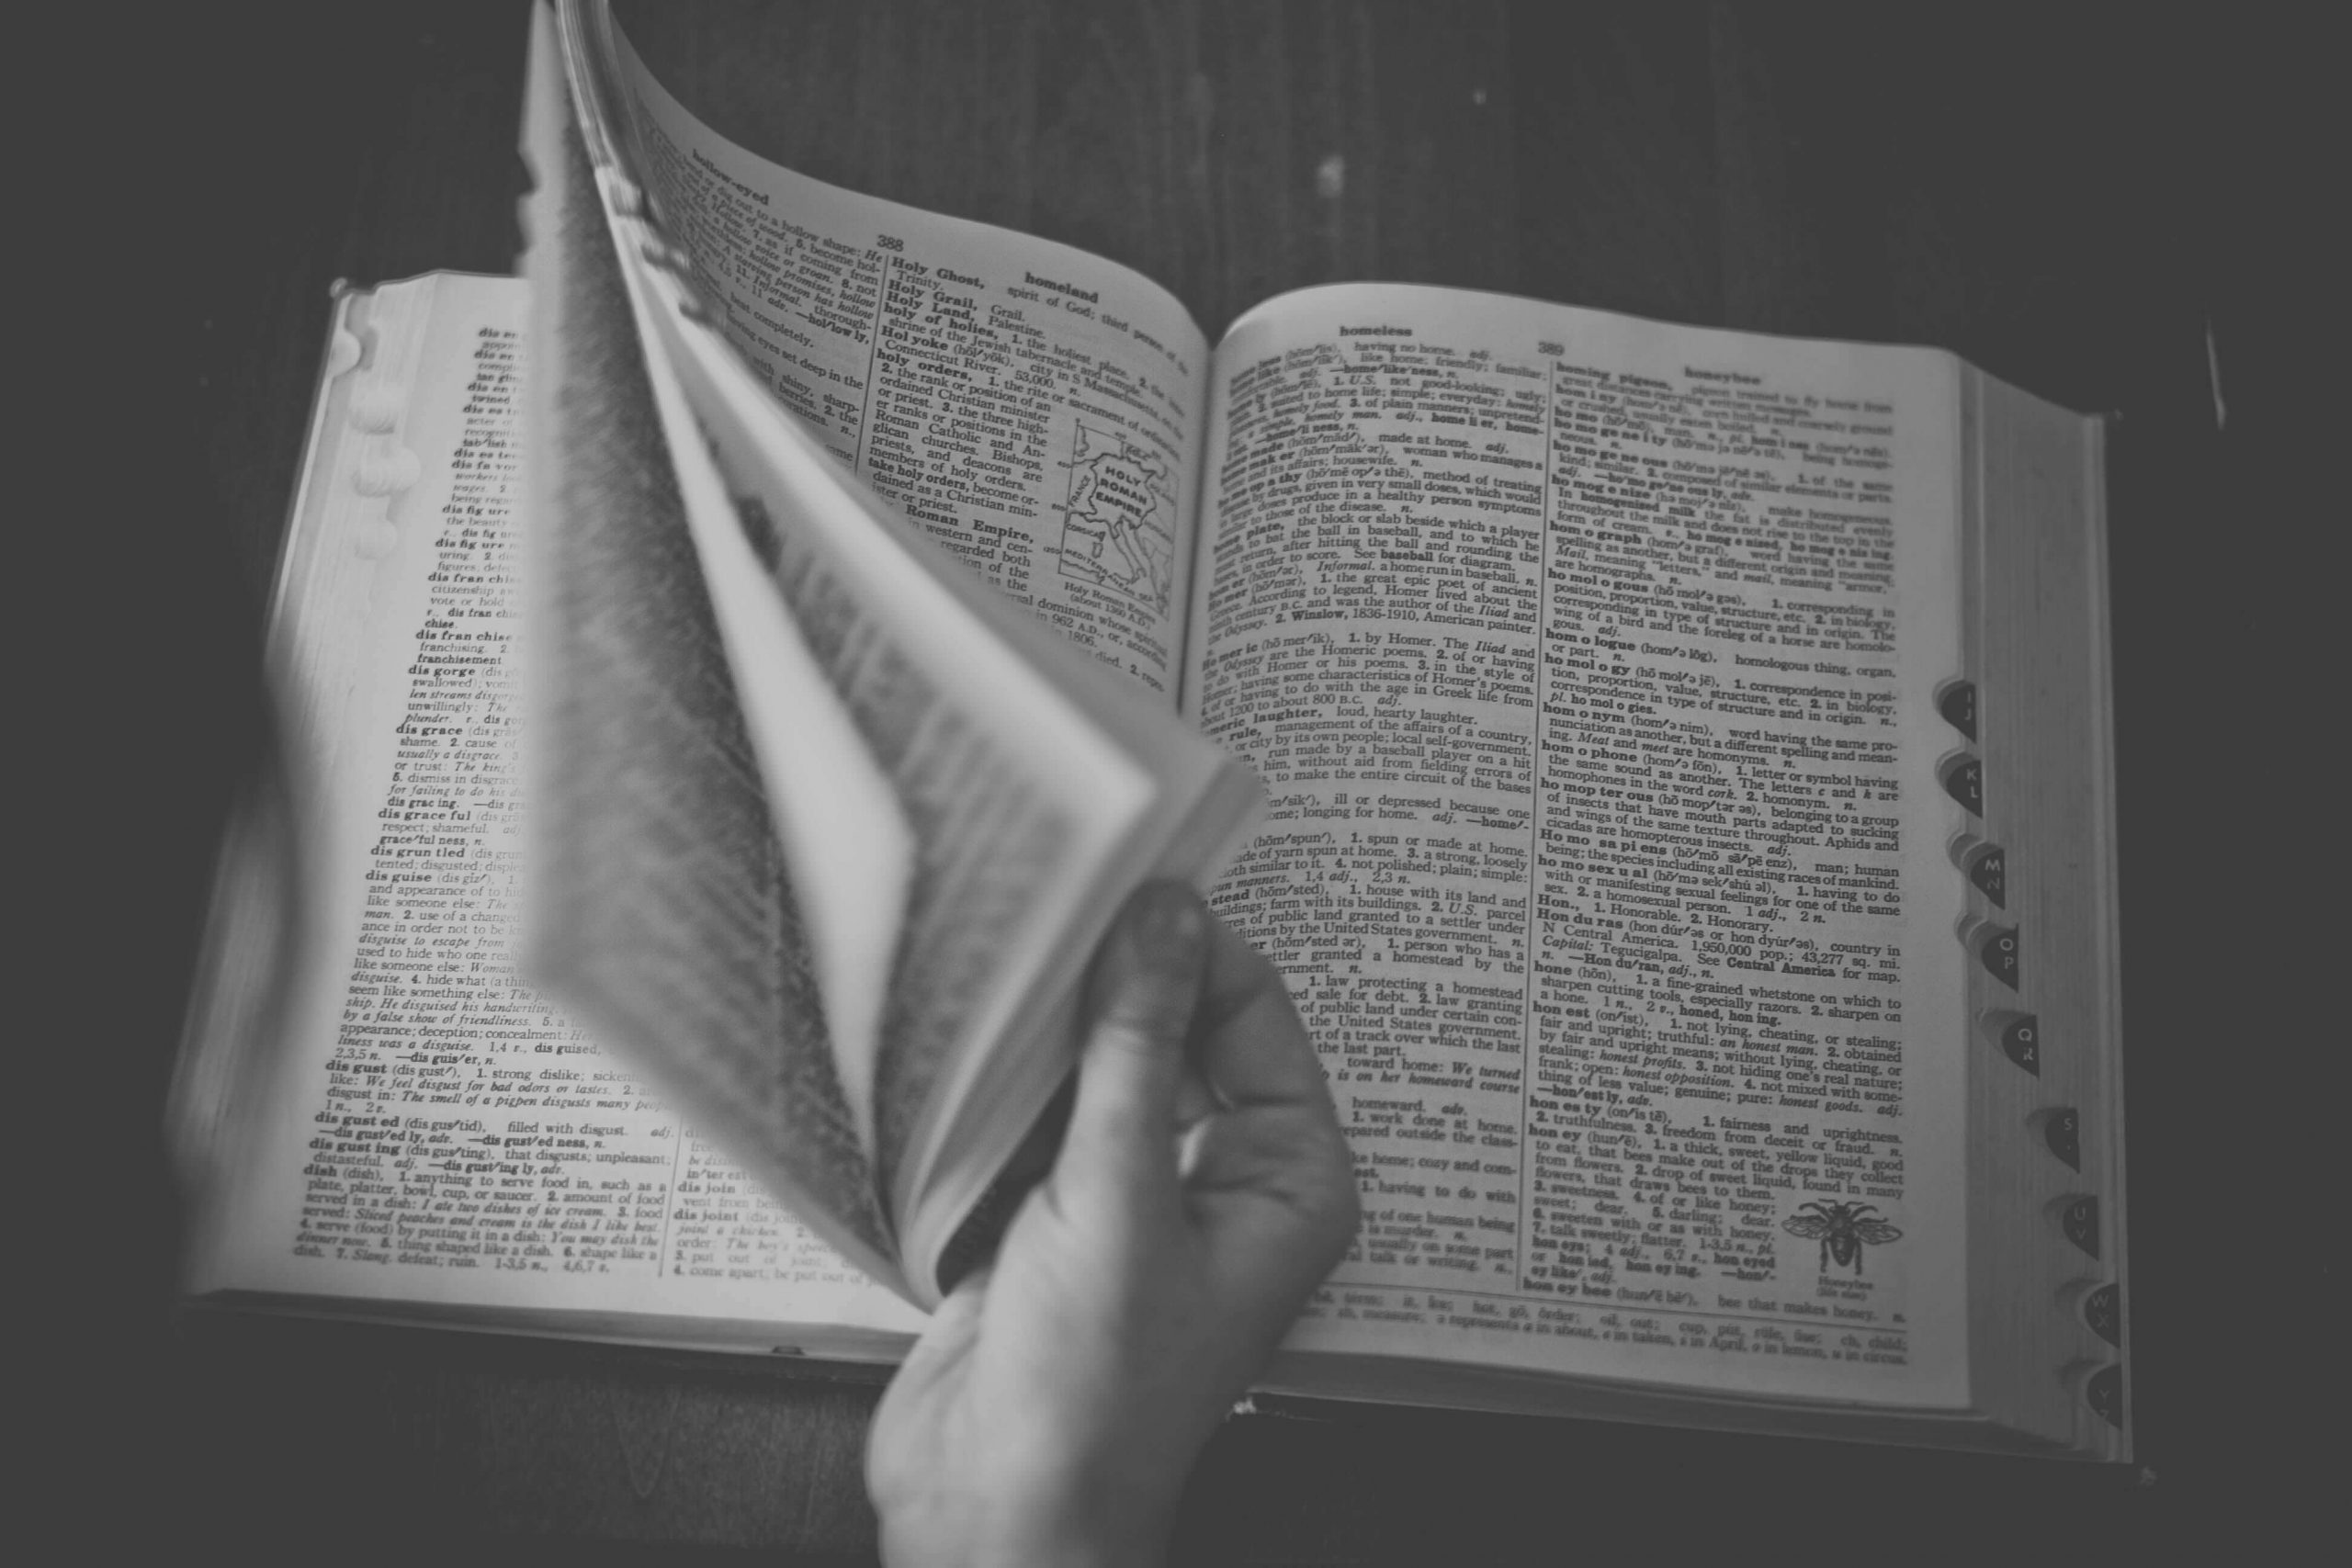 black-and-white-book-browse-dictionary-6997 (1)